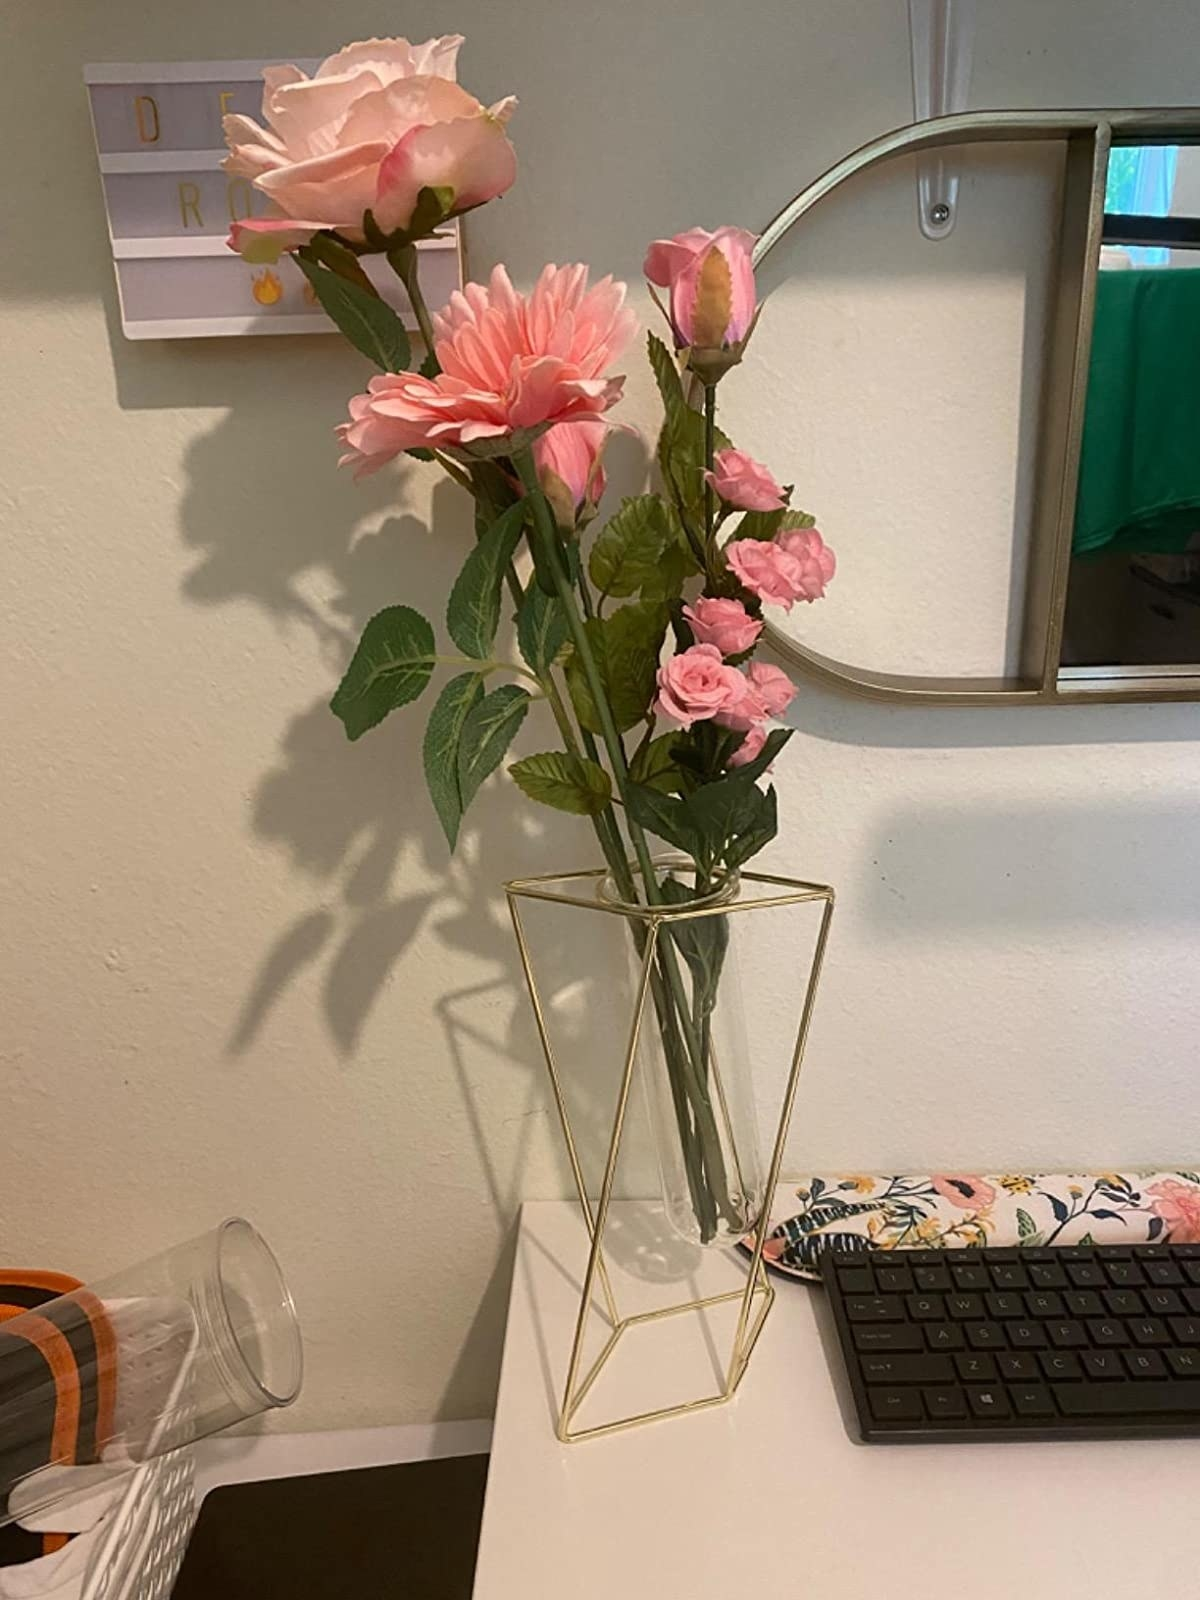 The vase, which has an open geometric wire frame, and a glass bulb to hold flowers and water